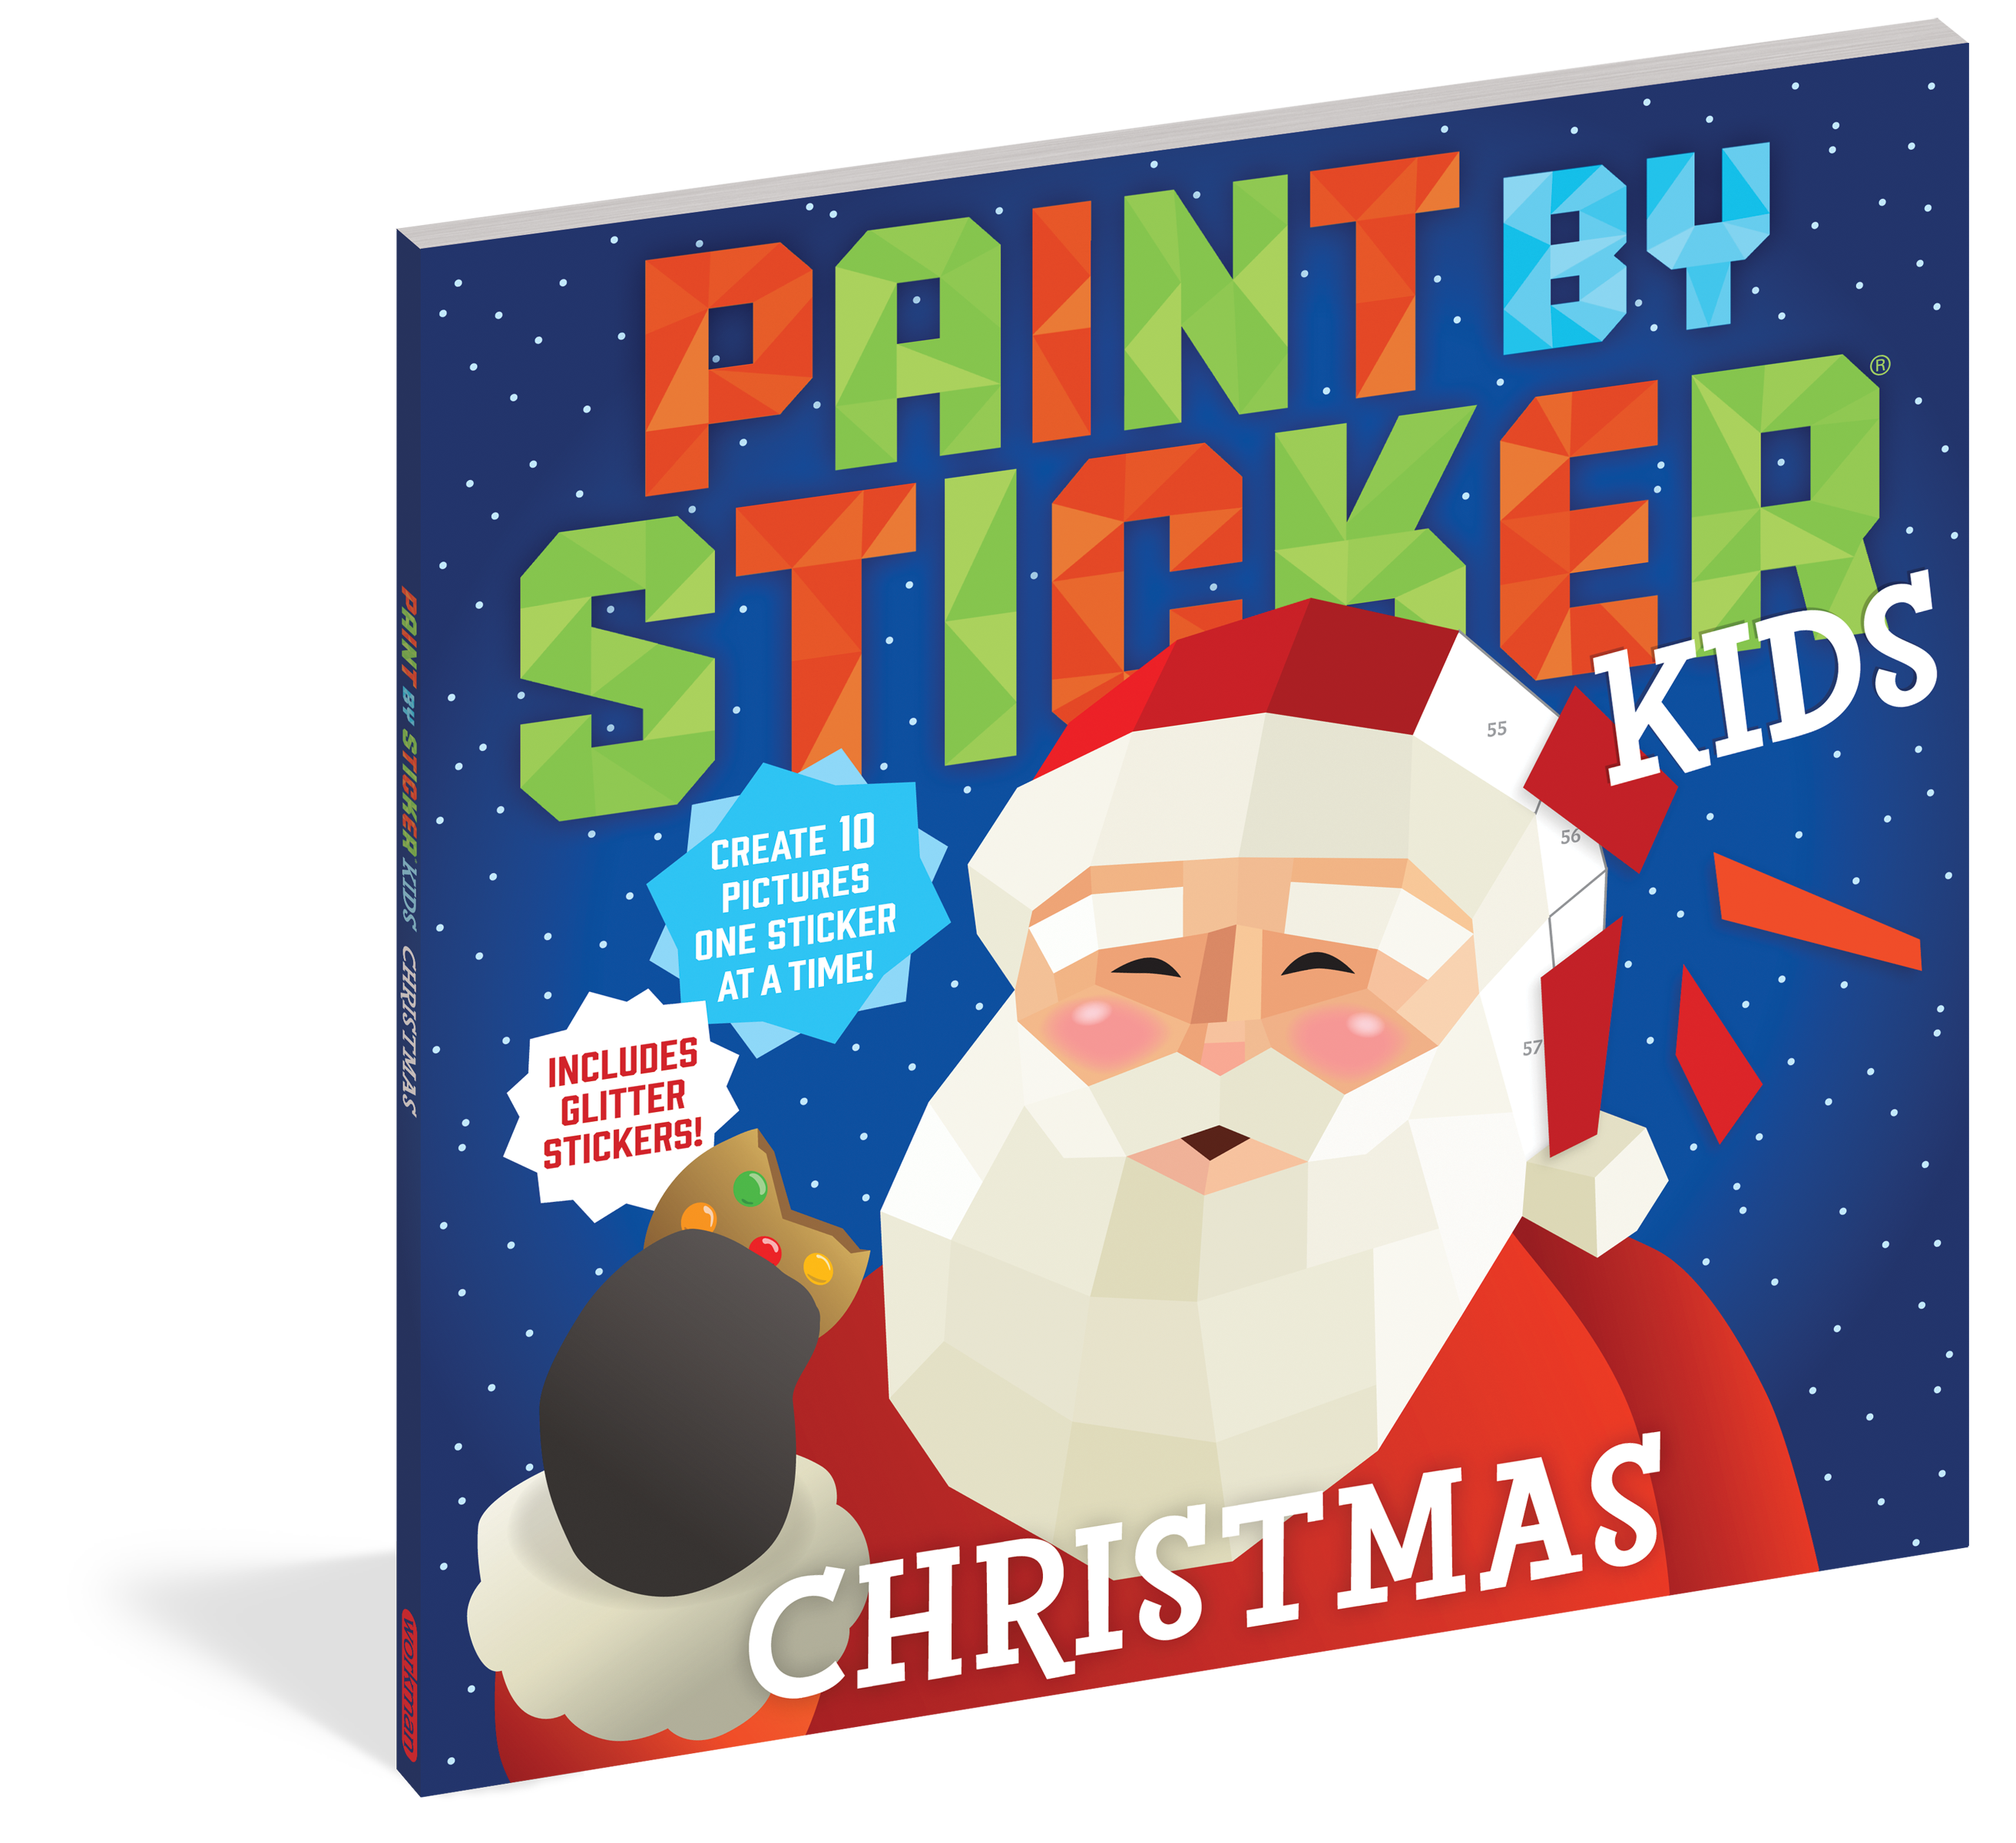 Paint by Sticker Kids: New in this bestselling activity series, Paint by Sticker Kids: Christmas includes everything kids need to create ten vibrant images, including Santa, a snowman, stockings filled with presents, and a dazzling Christmas tree—with glitter stickers that make the images shine.